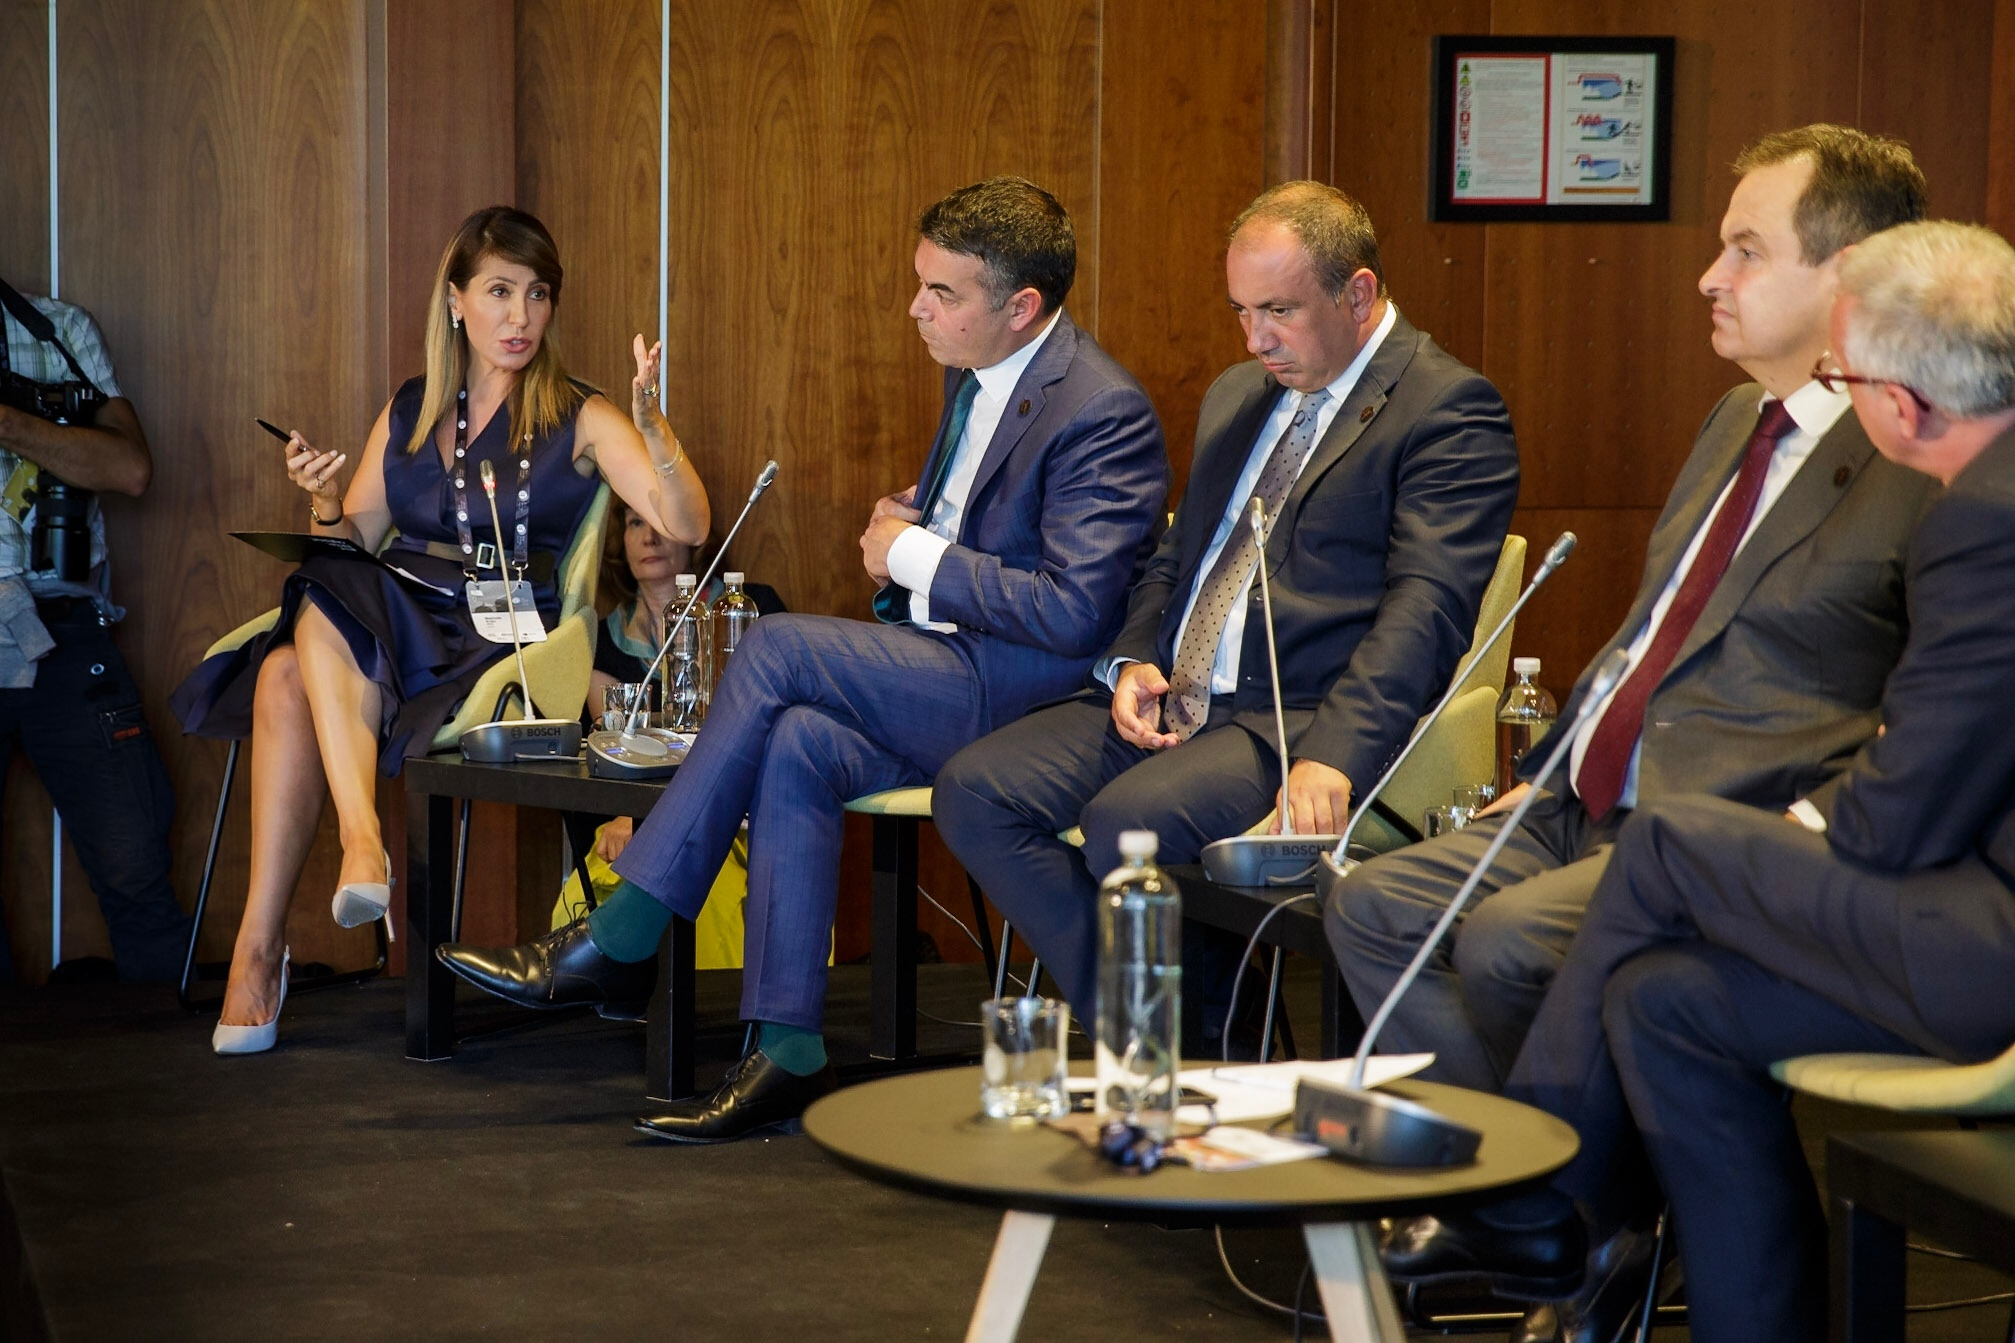 Majlinda Bregu, Secretary General of the Regional Cooperation Council (RCC) during the Panel dedicated to Western Balkans - Europeisation, Democratisation, Shared Responsibility at  the 14th Bled Strategic Forum, in Bled on 3 September 2019 (Photo: RCC/Matej Kolakovic)